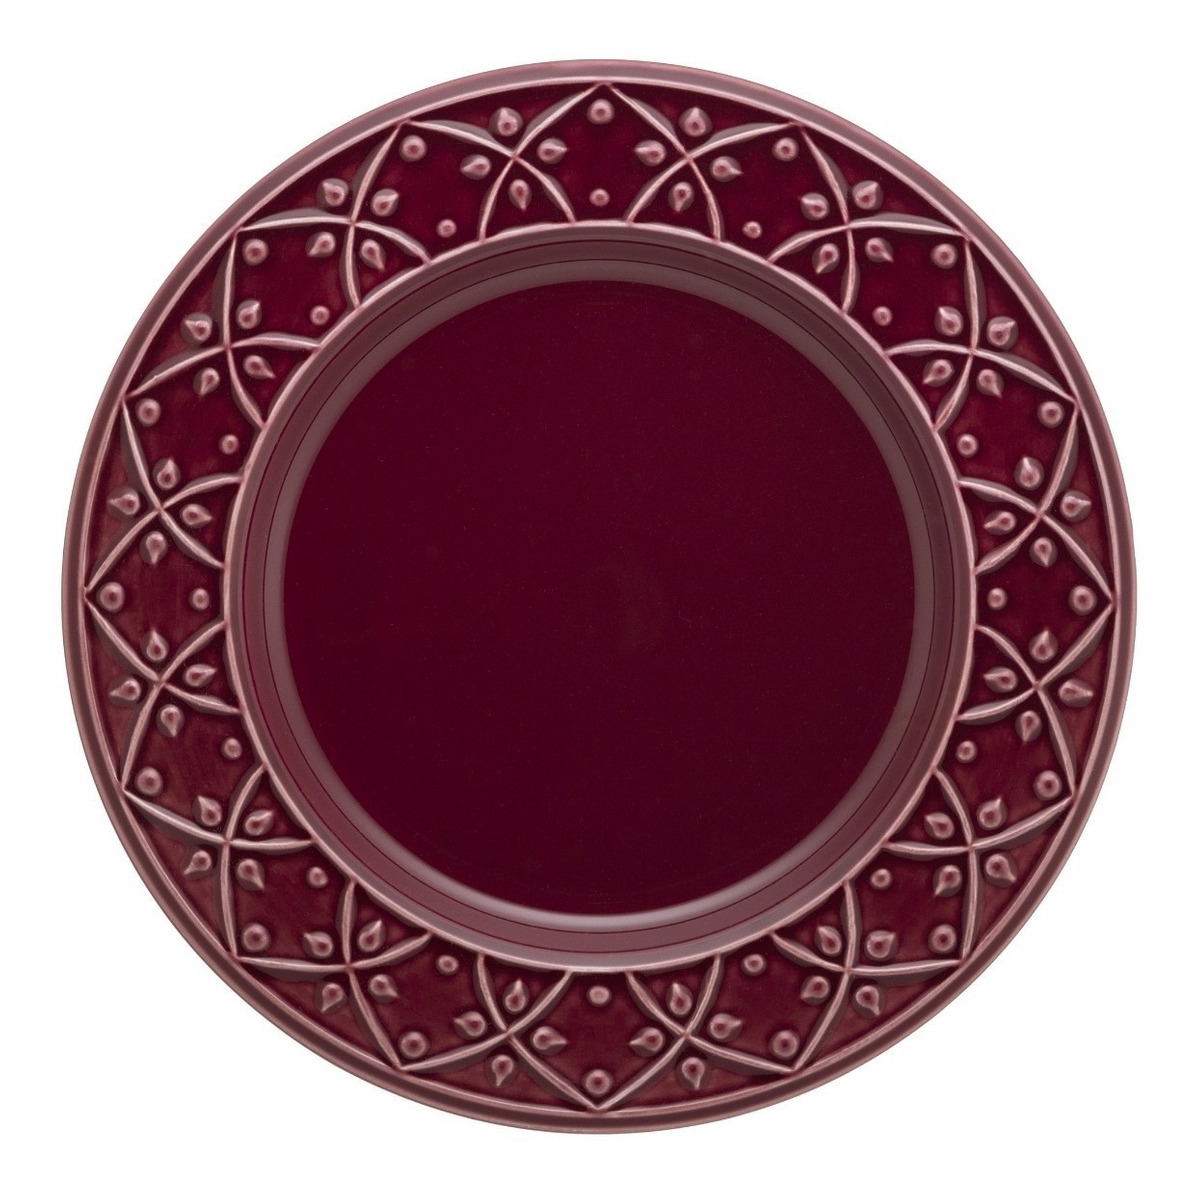 Plato Playo 26 Cm Ceramica Oxford Corvina Bordo Fino Relieve